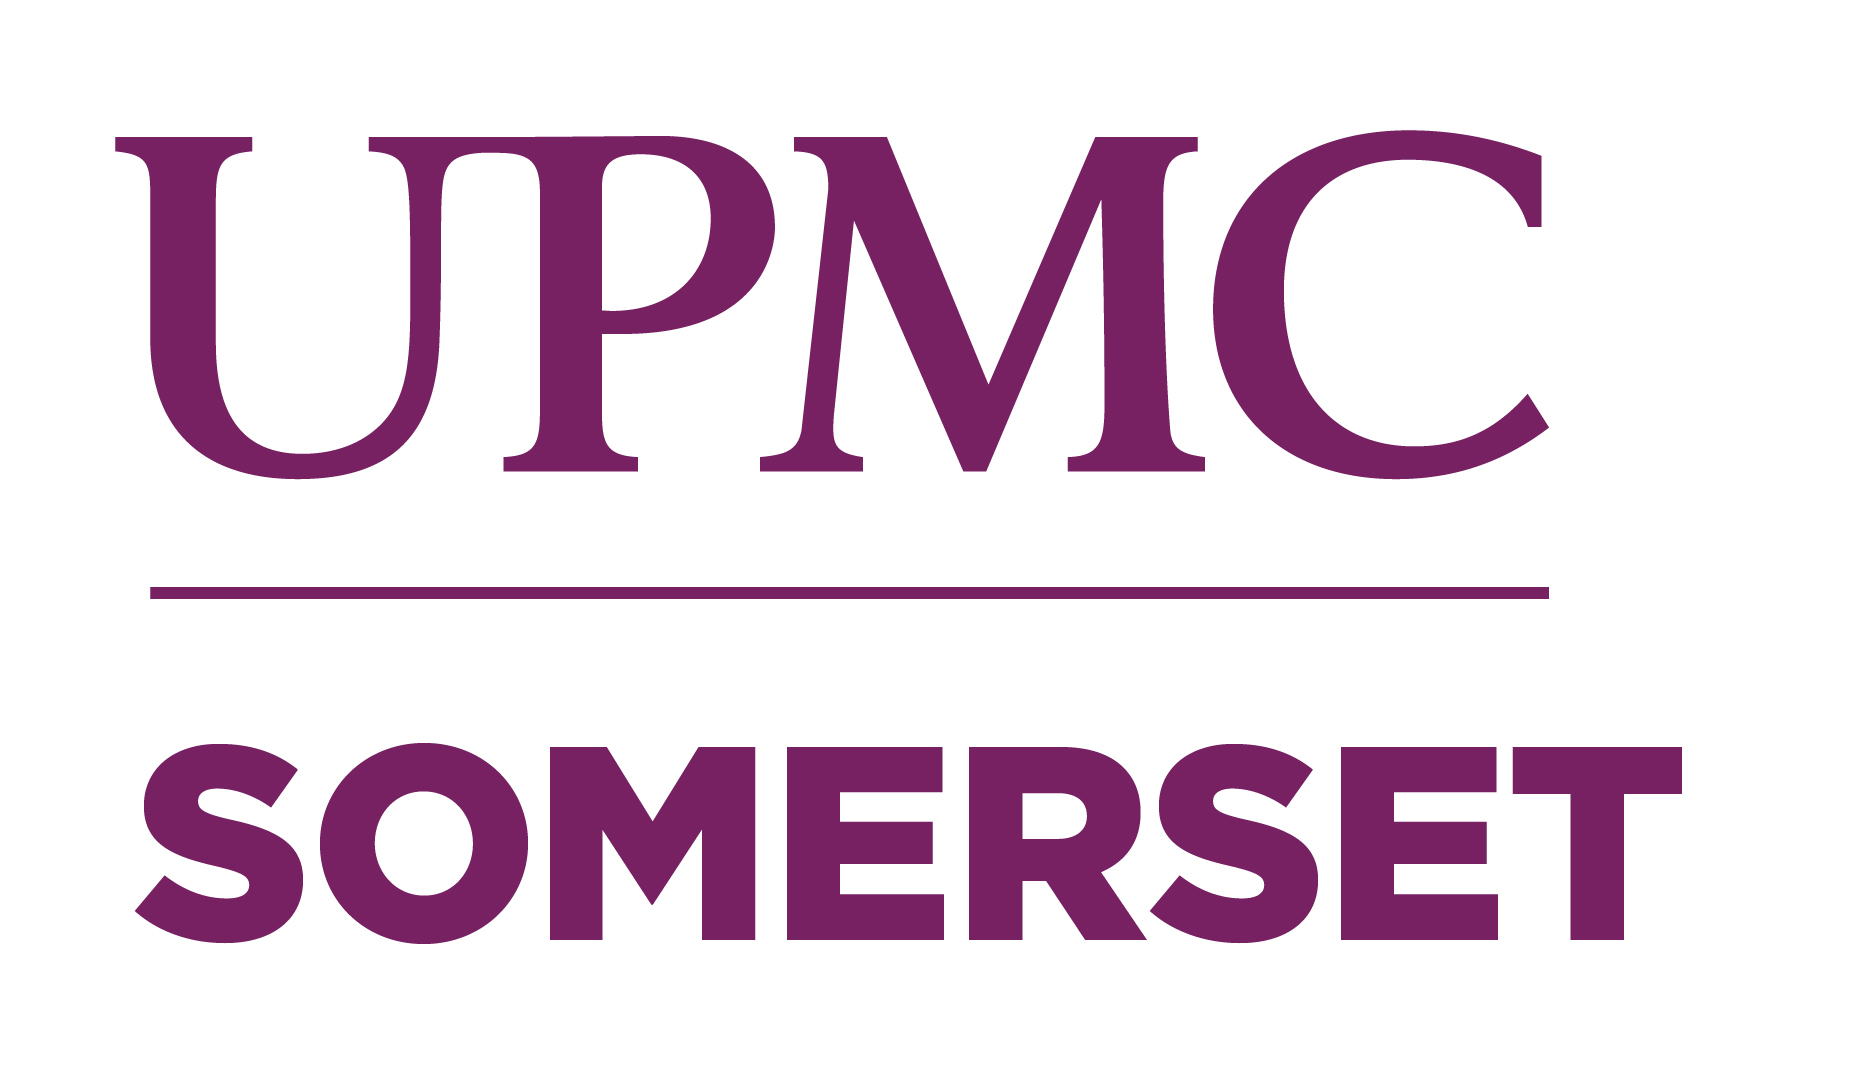 Somerset Hospital | Your community hospital in Somerset